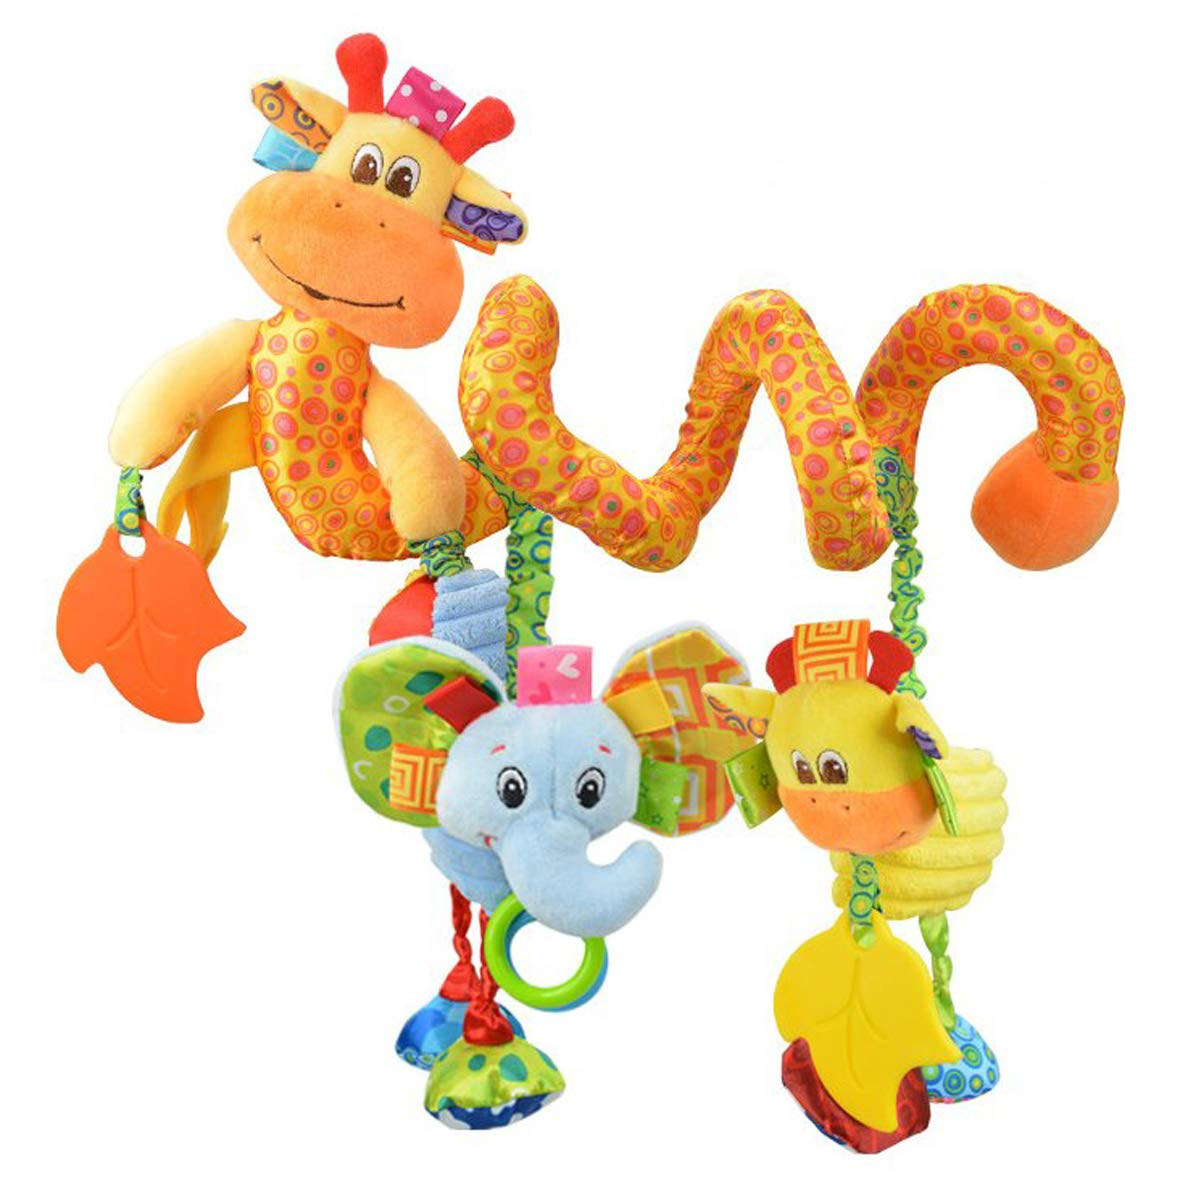 VX-star Baby Pram Crib Ornament Hangings Yellow Cute Little Deer Shape Design Spiral Plush Toys Stroller and Travel Activity Toy